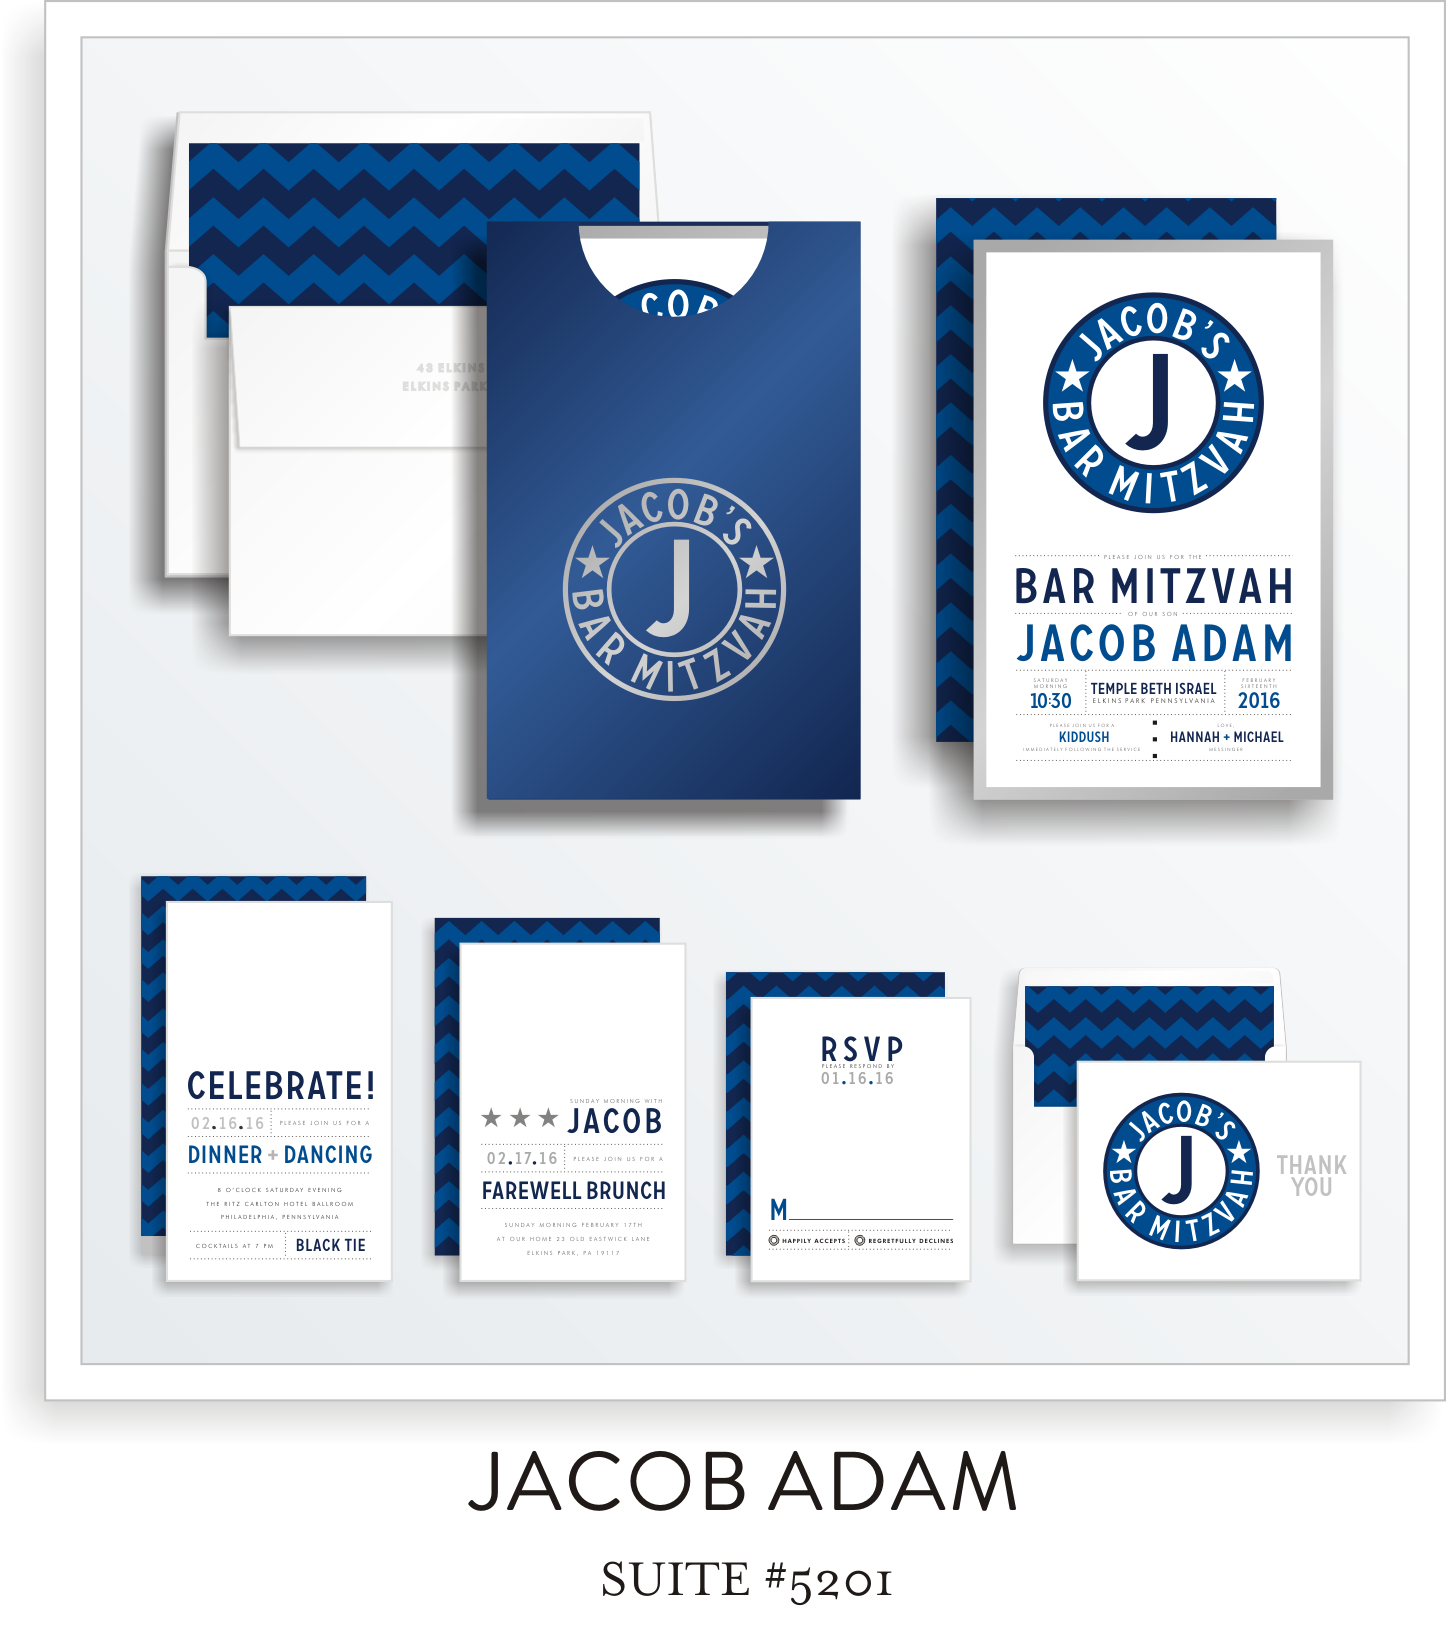 Copy of <a href=/bar-mitzvah-invitations-5201>Suite Details→</a><strong><a href=/jacob-adam-in-colors>see more colors→</a></strong>